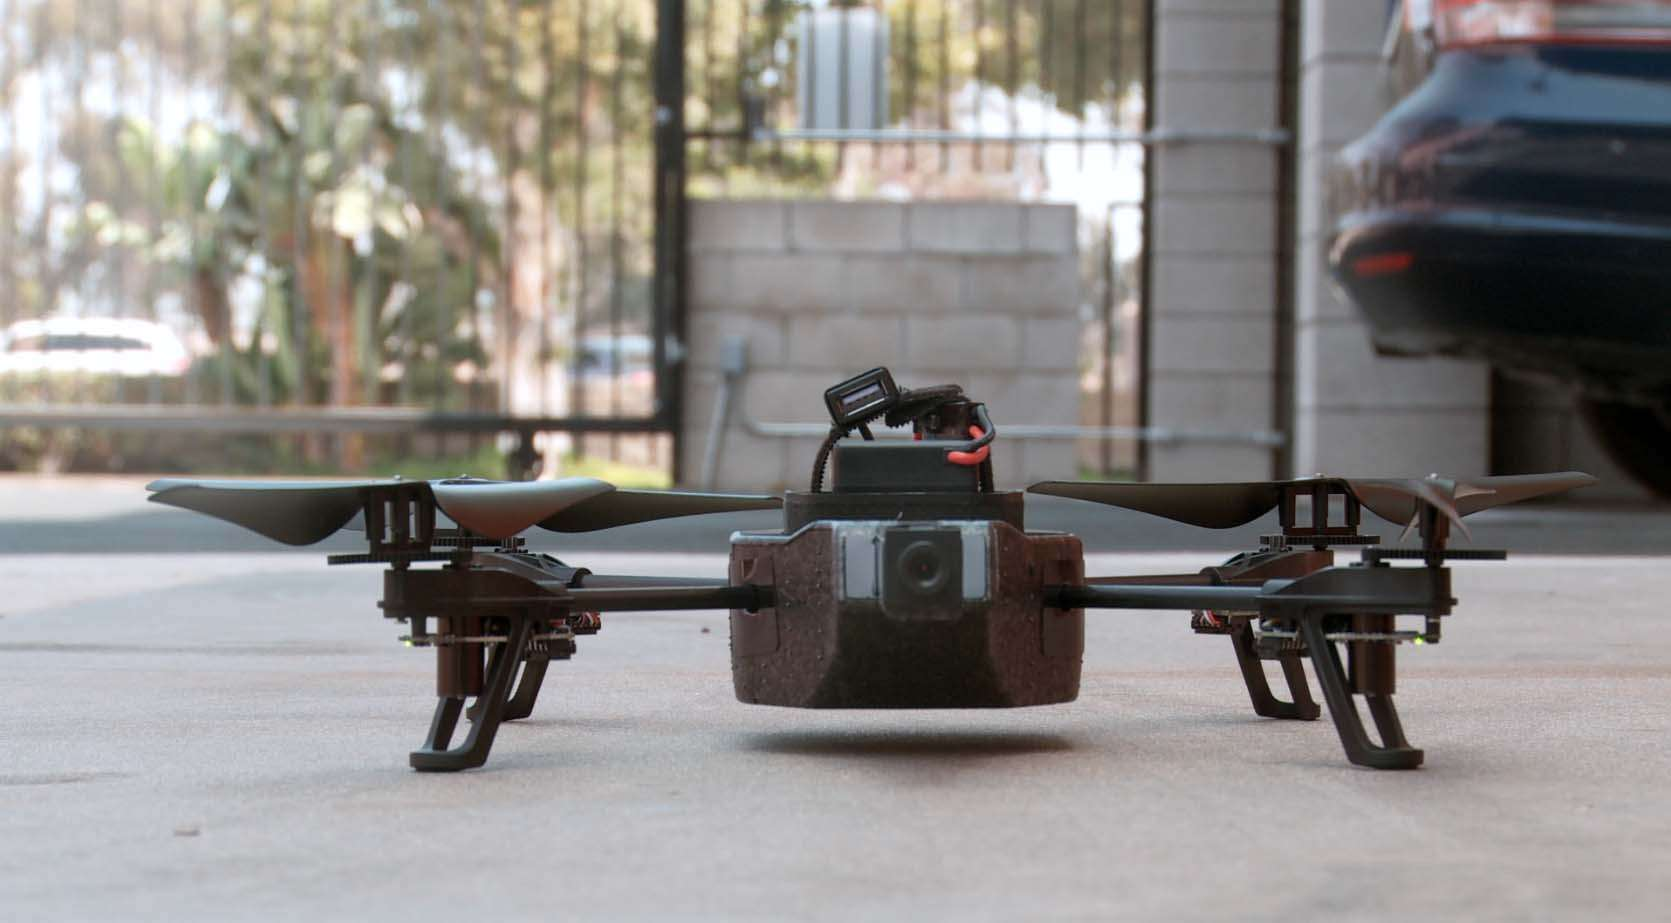 Drone like this one are becoming cheaper and more available to civilians.